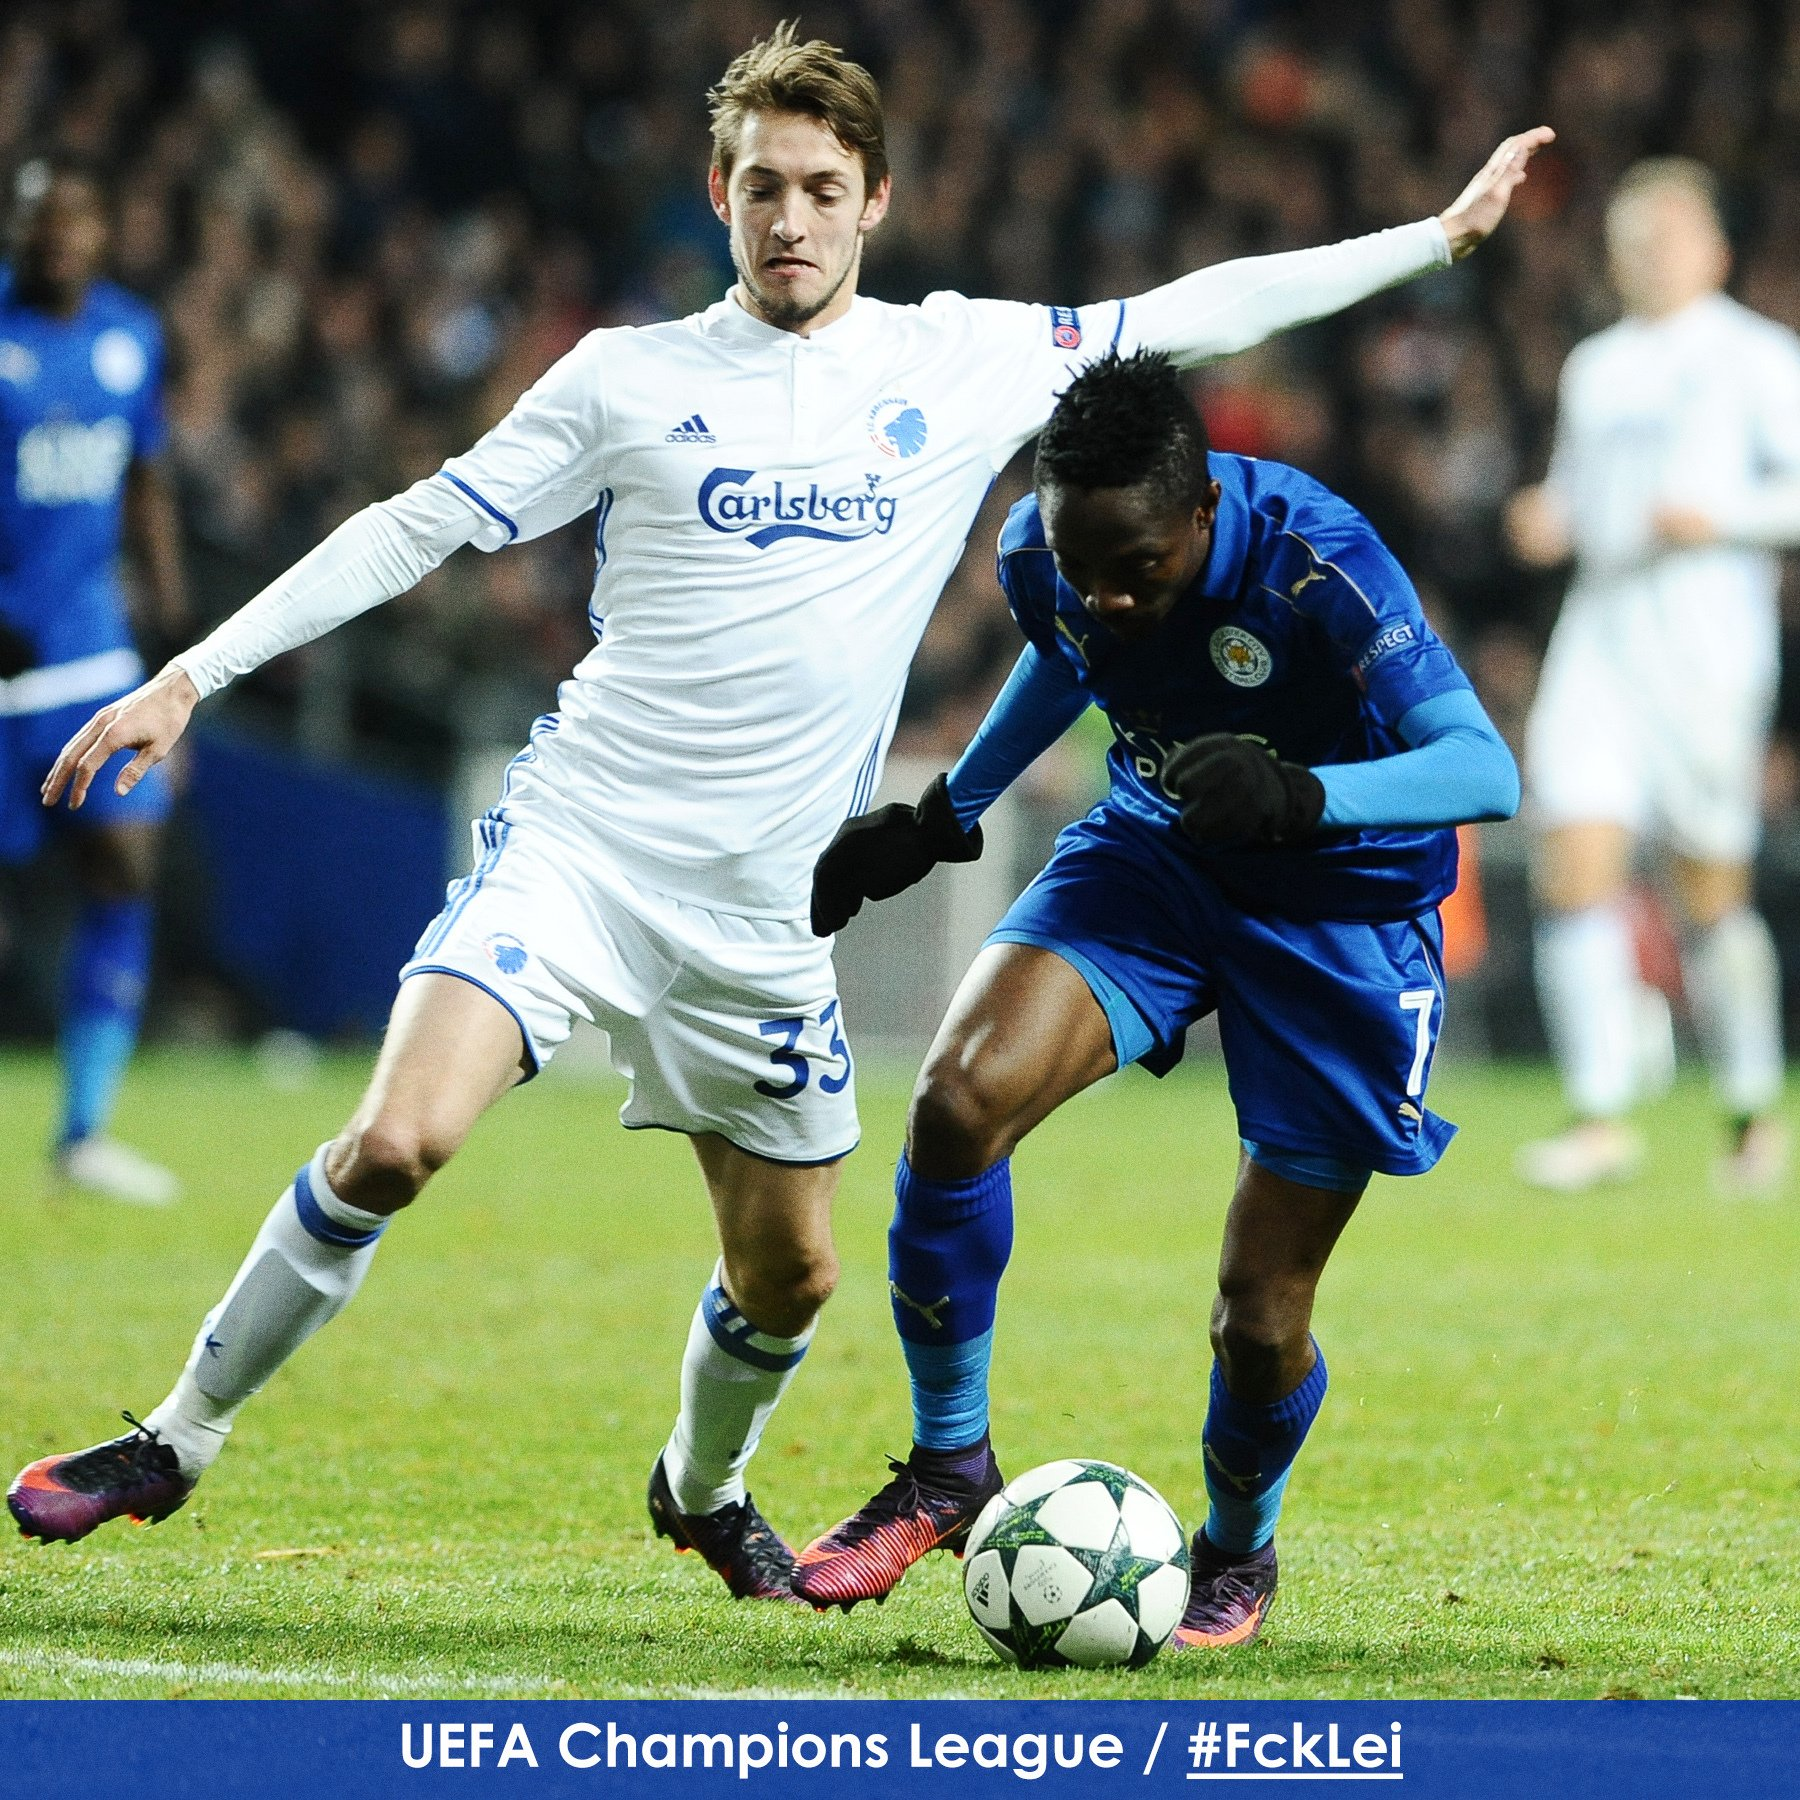 UCL: Musa's Leicester Draw; Real Escape Warsaw Defeat; Dortmund Advance